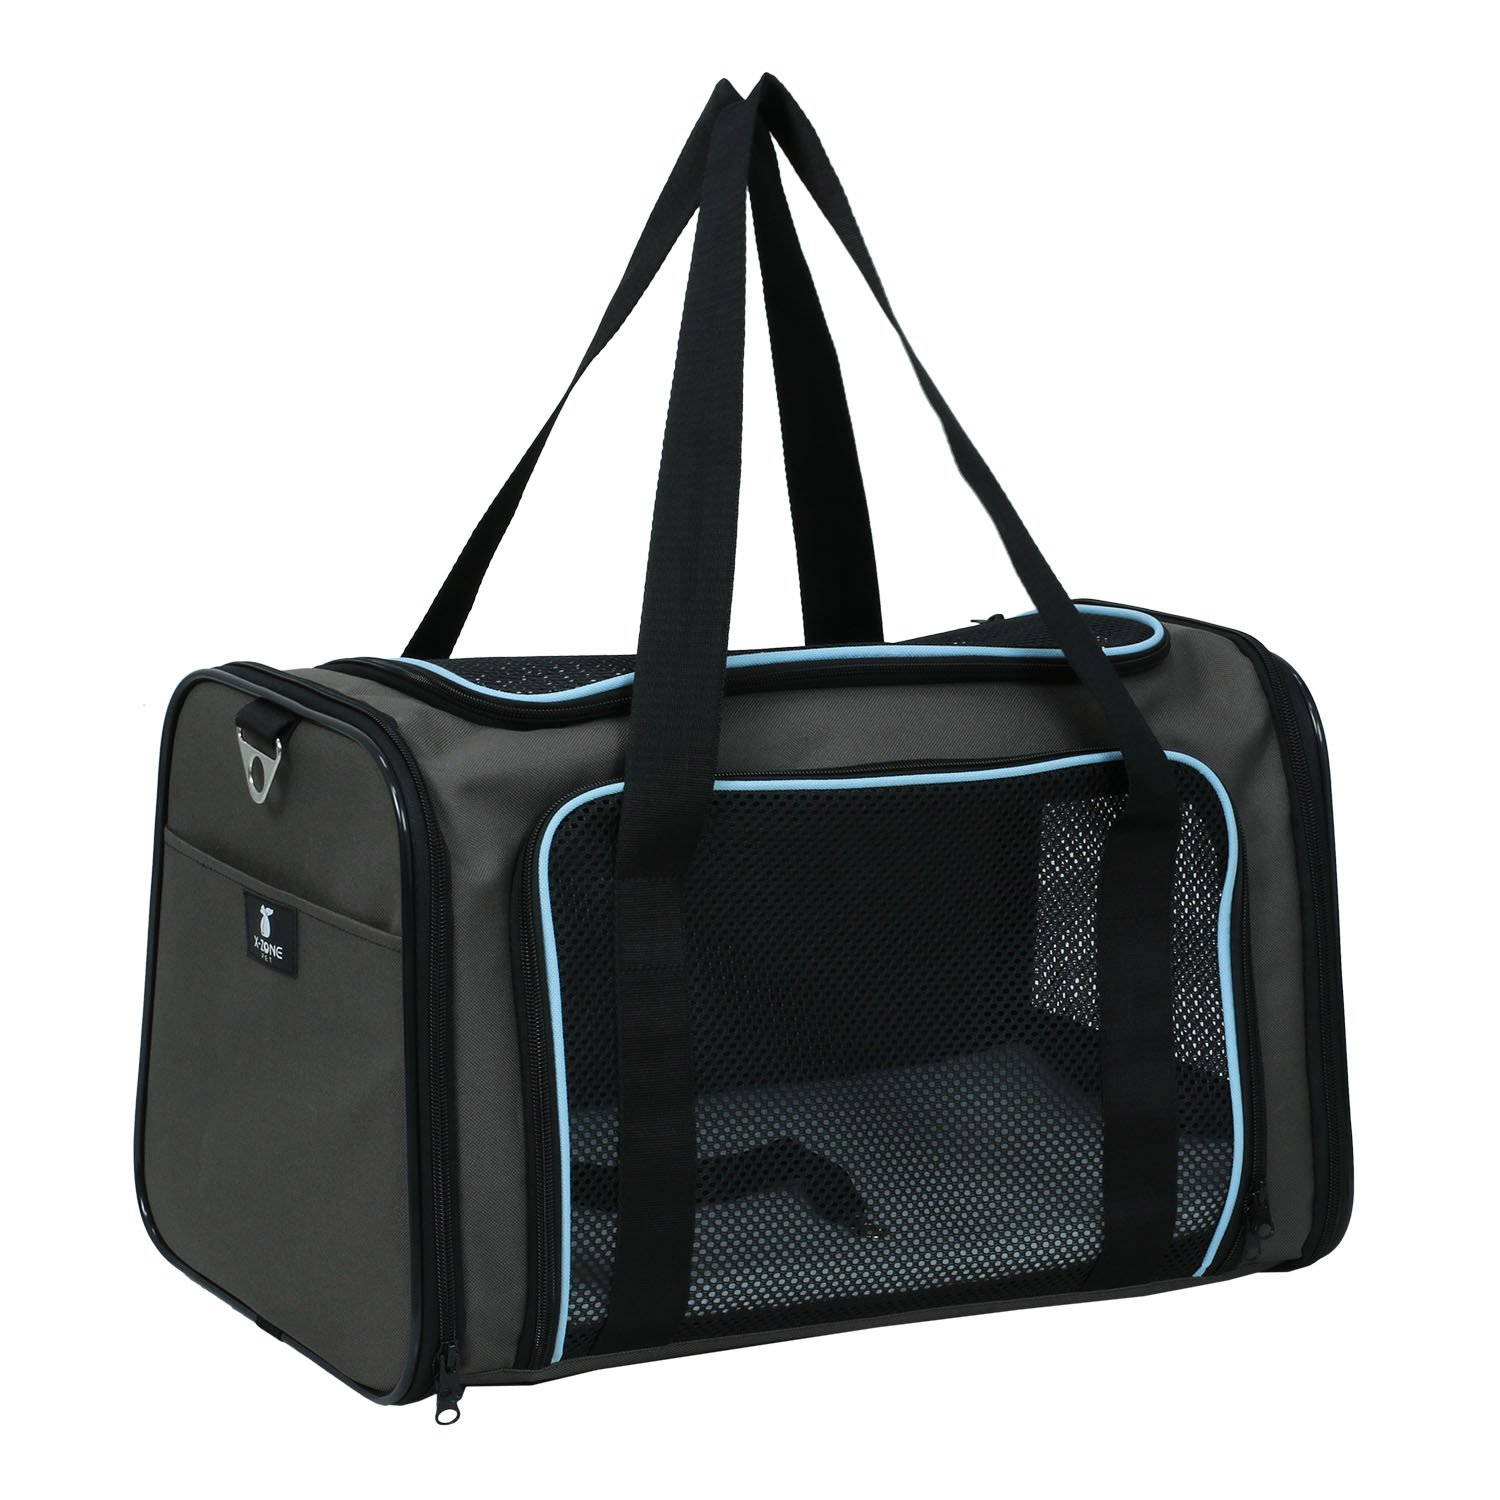 X-ZONE PET Airline Approved Pet Carriers d0b5614e2055